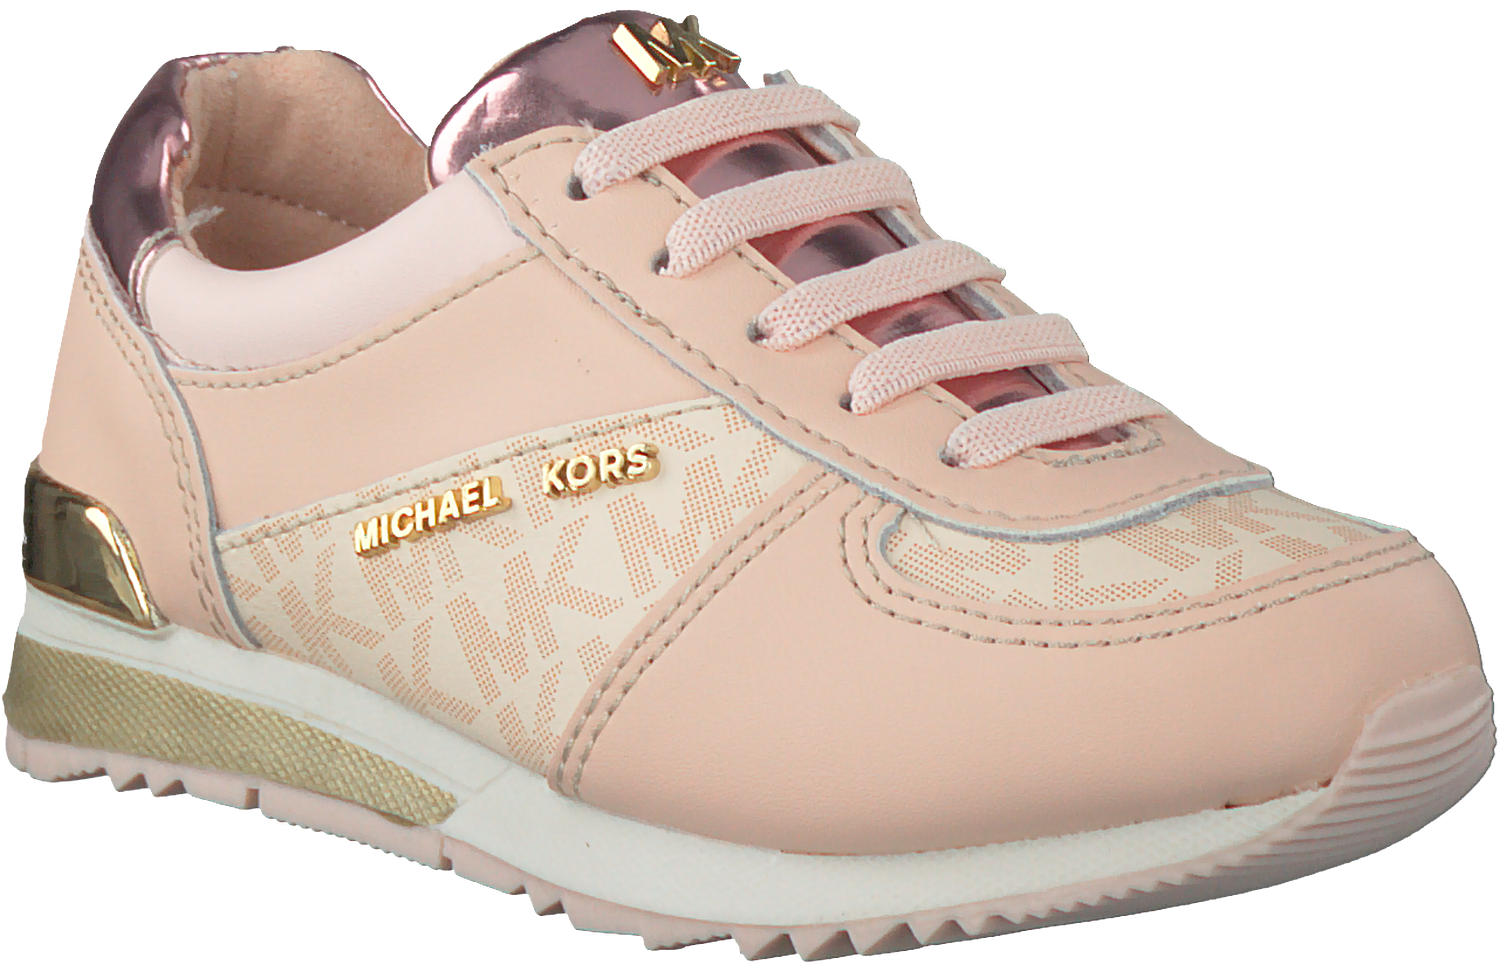 a50fafefdd6 Roze MICHAEL KORS Sneakers ZIA ALLIE WRAP. MICHAEL KORS. -50%. Previous